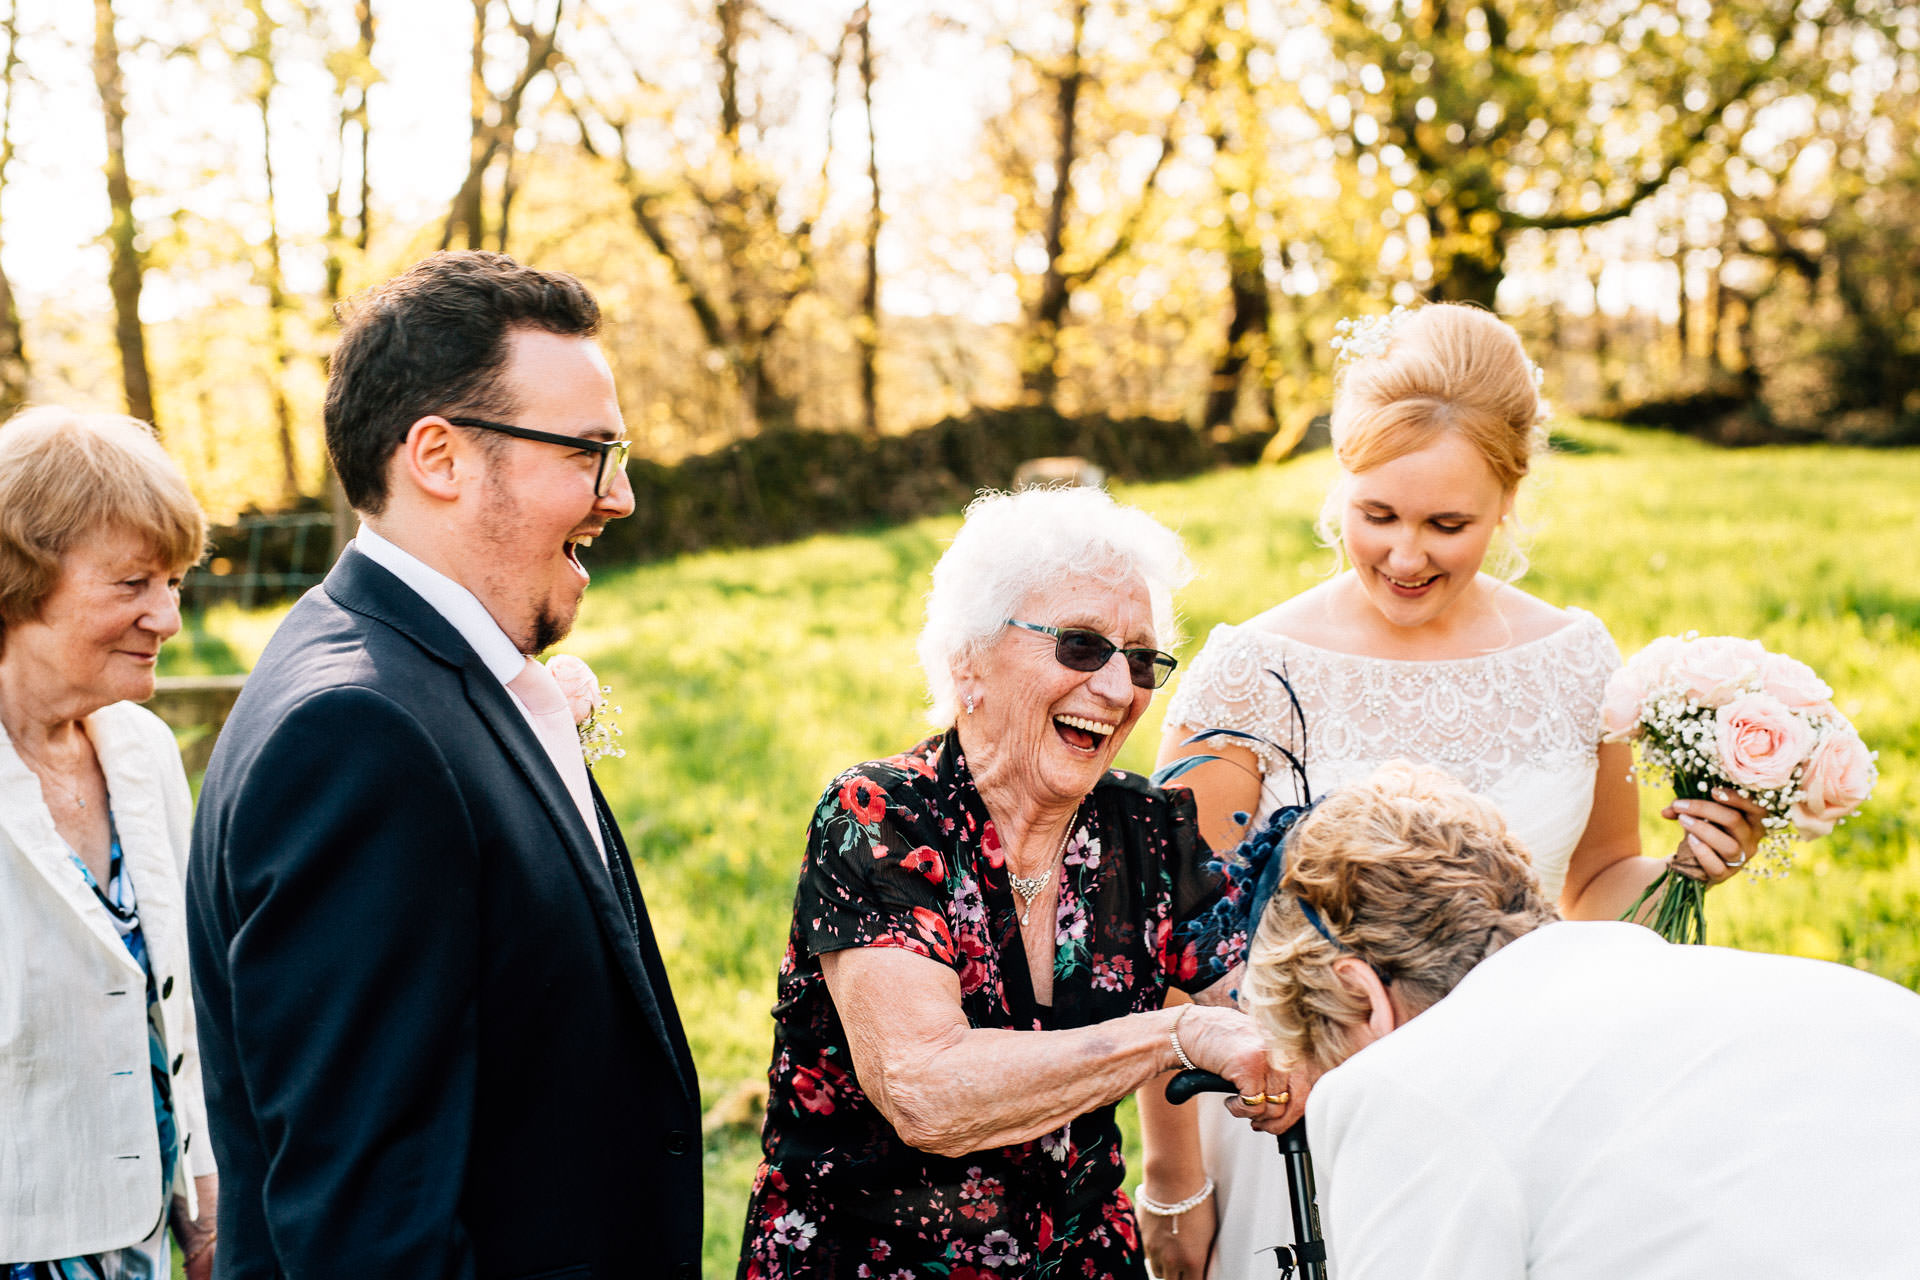 The Wild Boar Wedding Photography - EM - grandma laughing